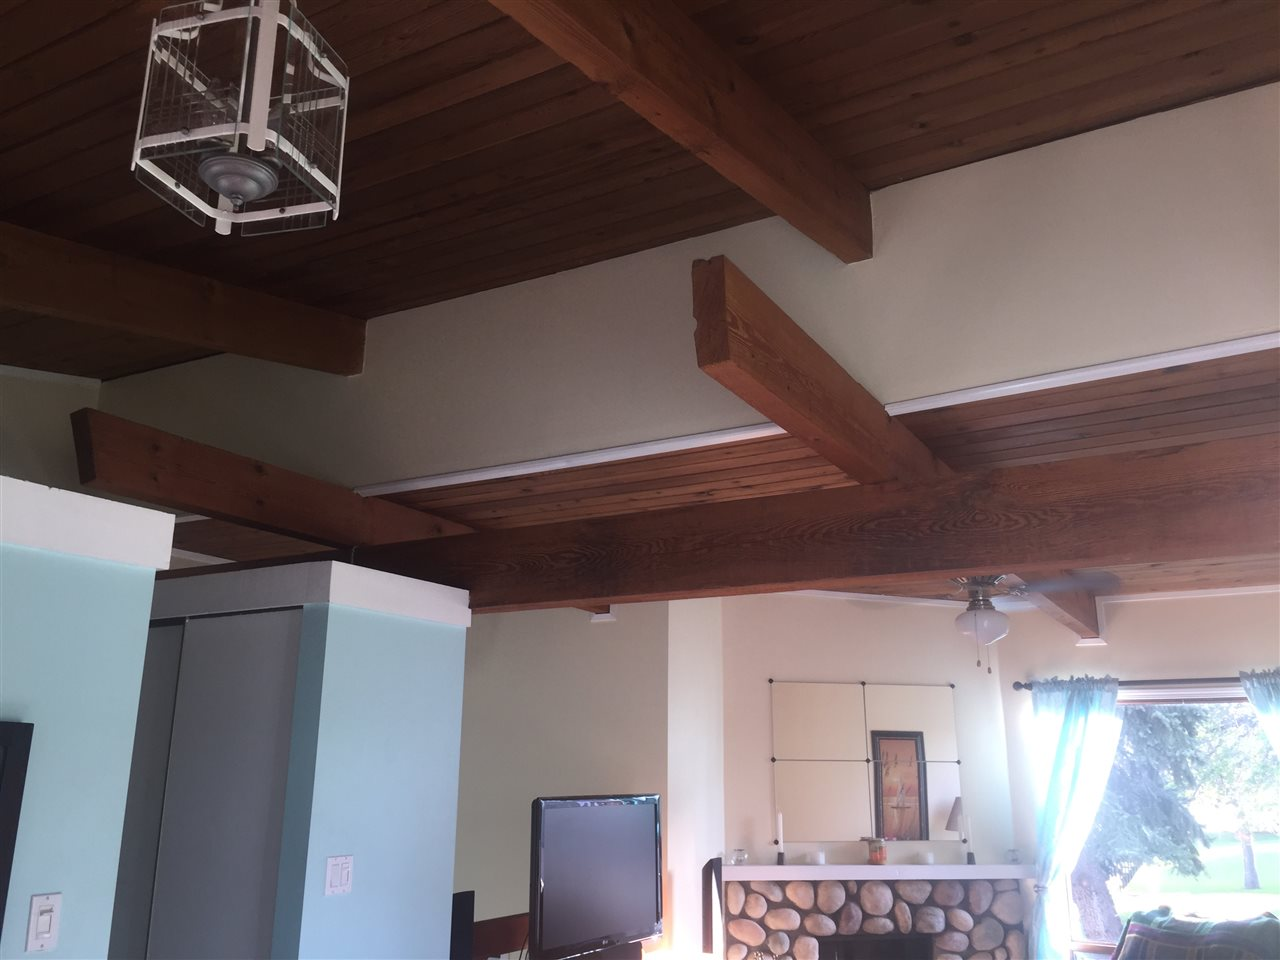 Gorgeous wood ceiling with open beams. Open over living room railing to entrance below. Hallway up to left with bathroom and closet.